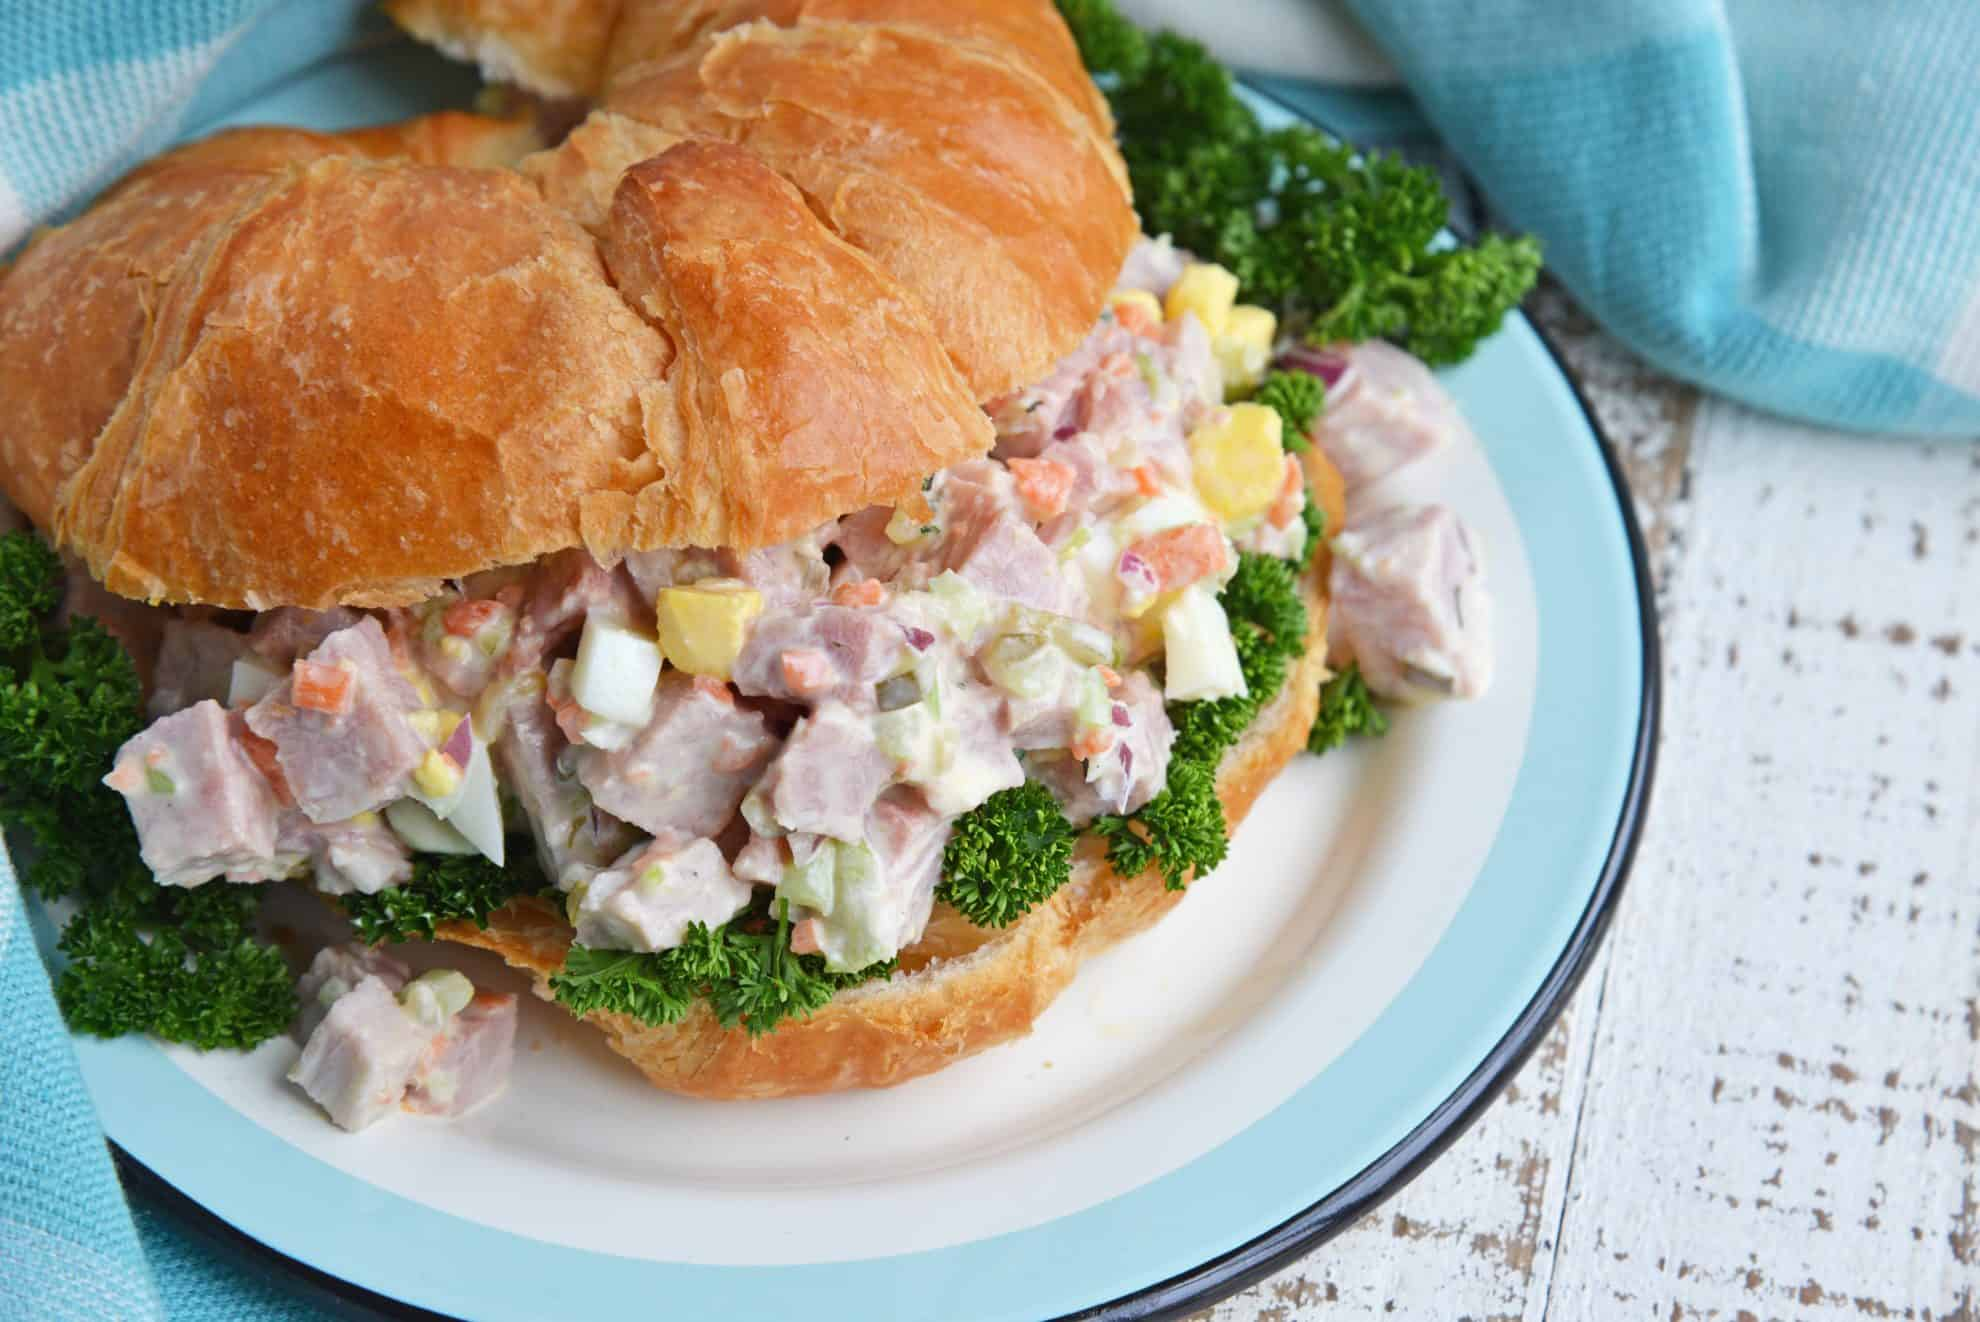 A close up of a sandwich on a plate, with Ham and Salad